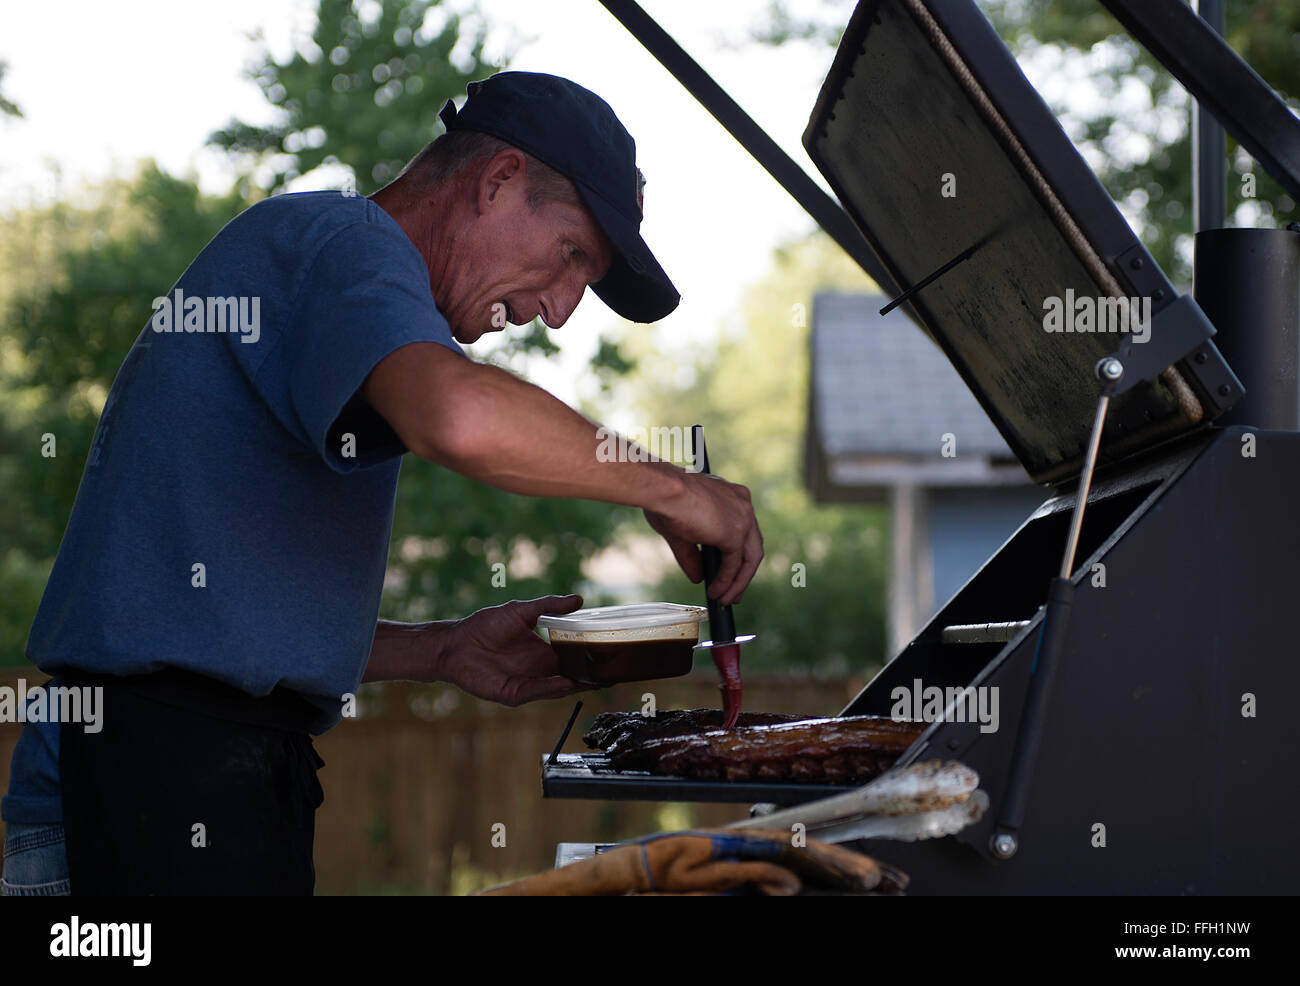 Tech. Sgt. Todd Houghton tries out a new barbecue sauce on ribs in his backyard. At the time, Houghton was honing - Stock Image